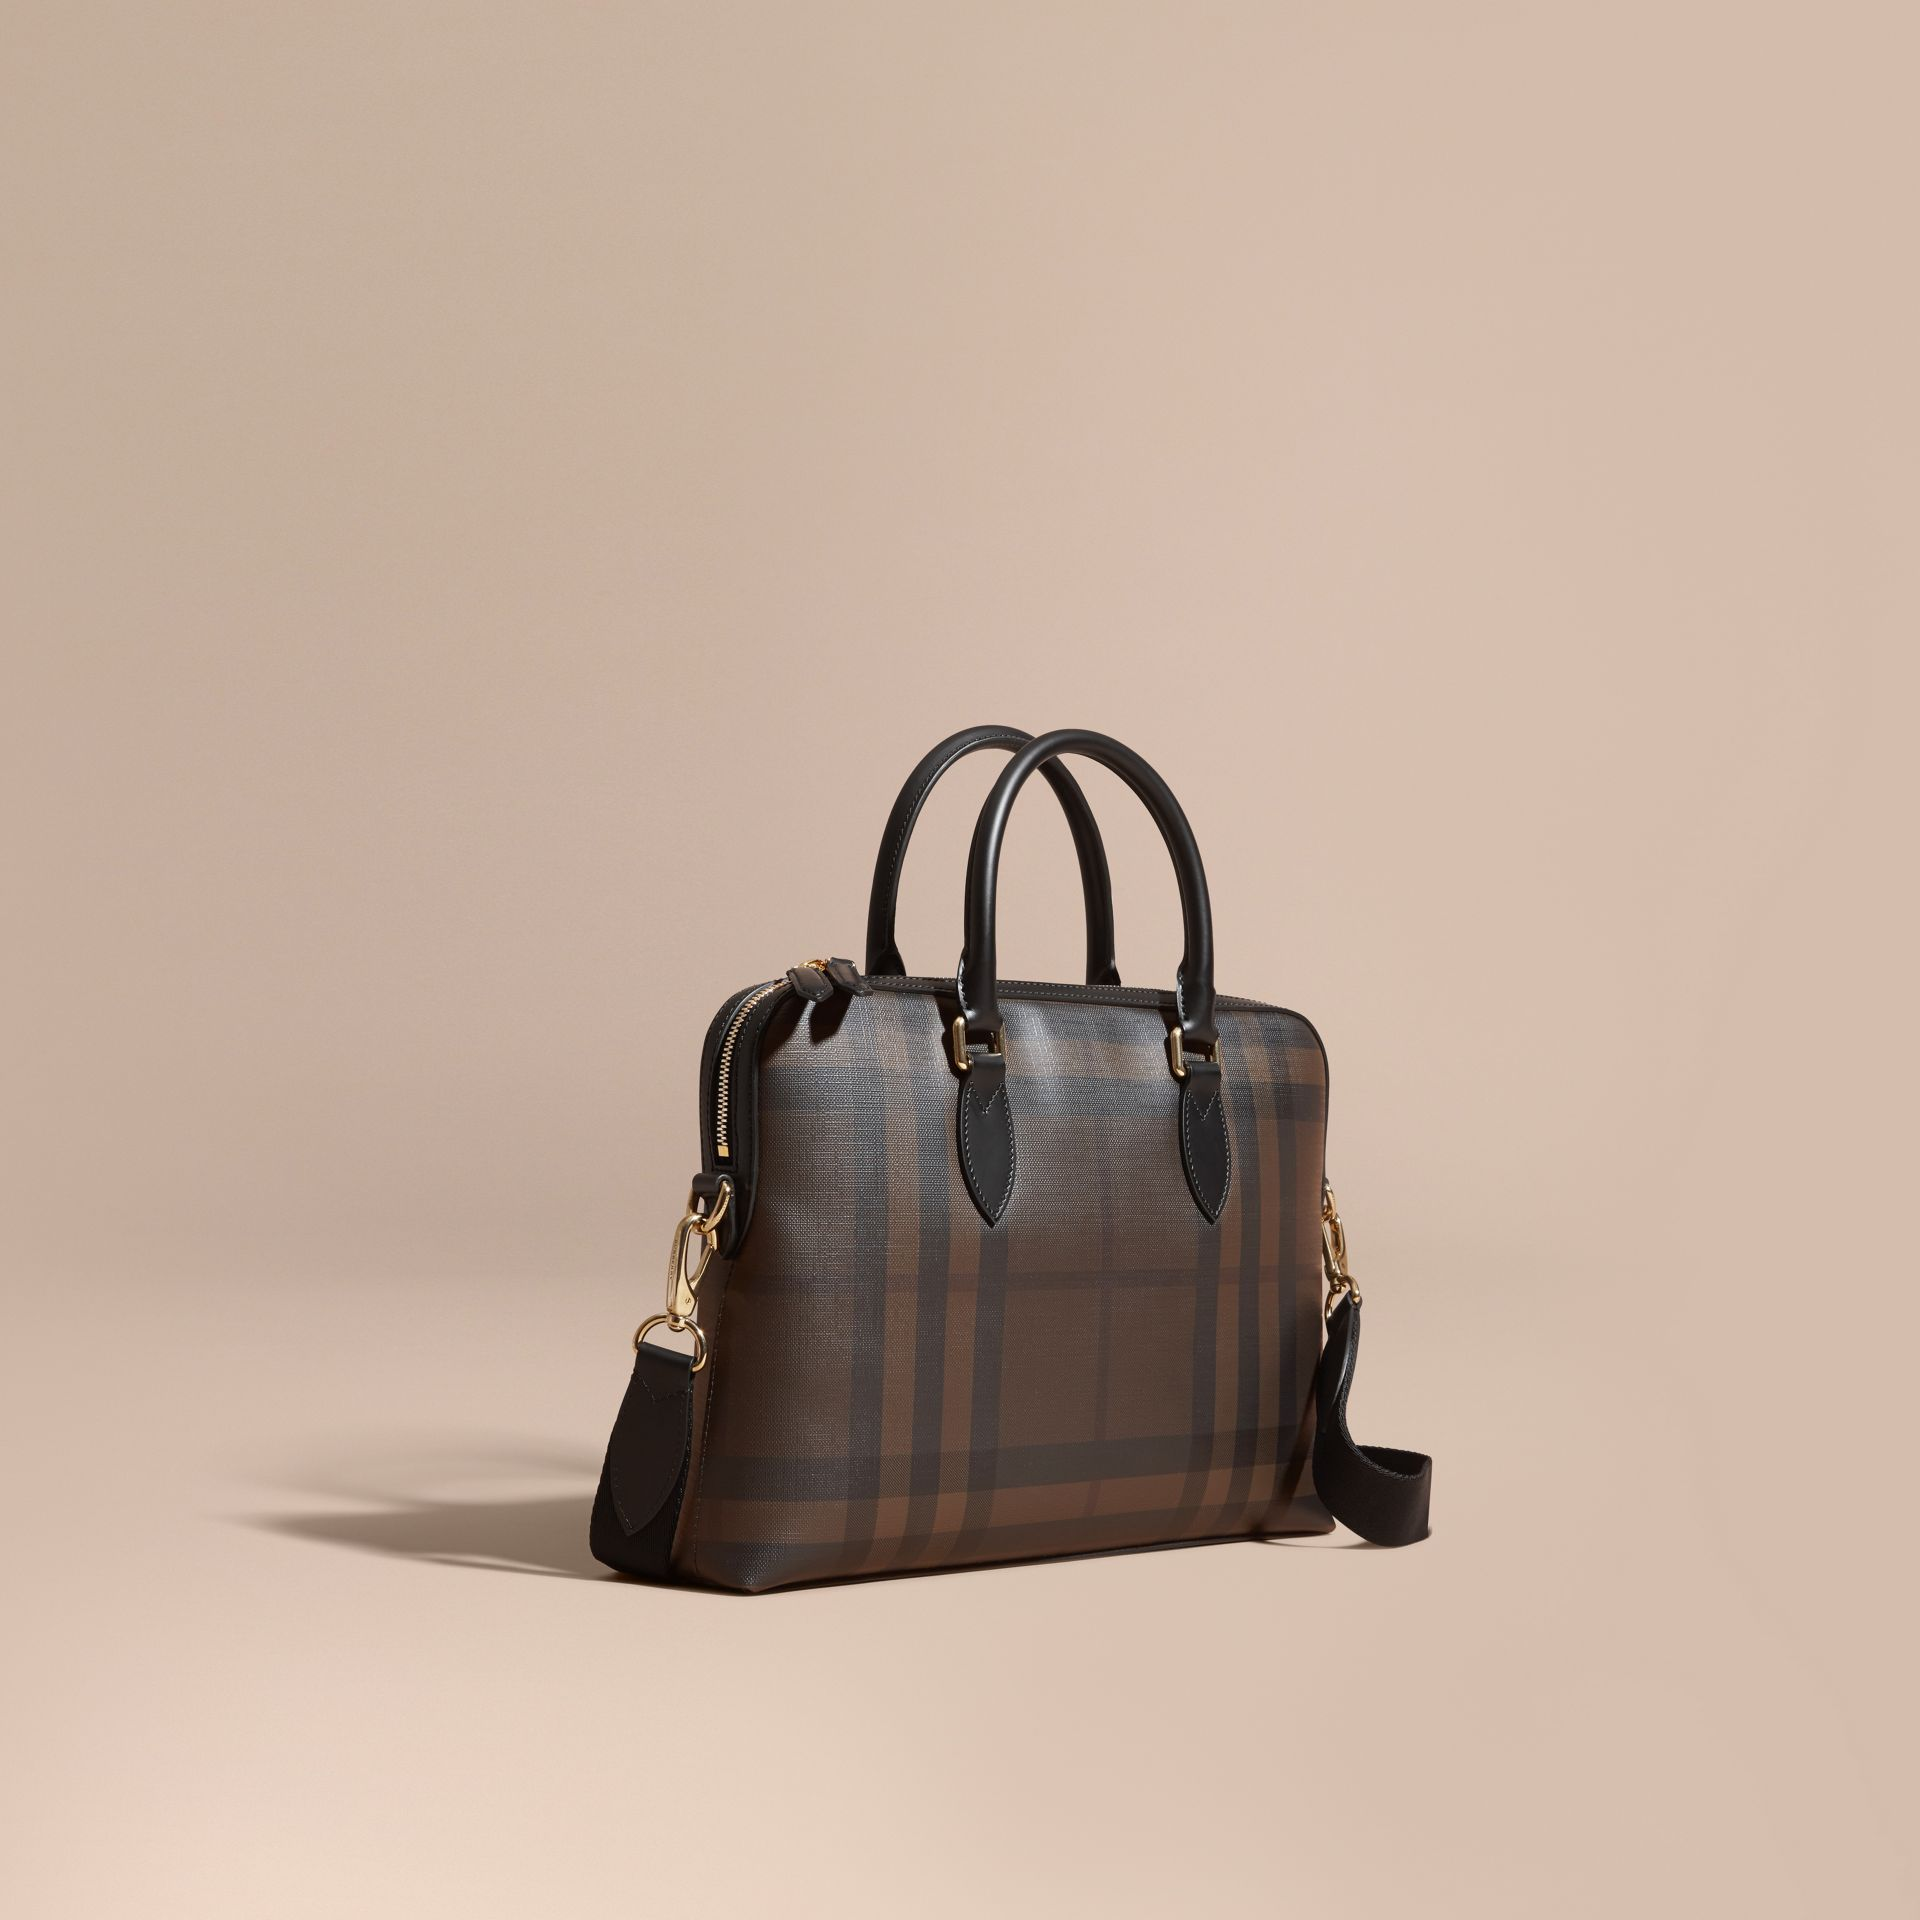 Sac The Barrow fin avec motif London check (Chocolat/noir) - photo de la galerie 1